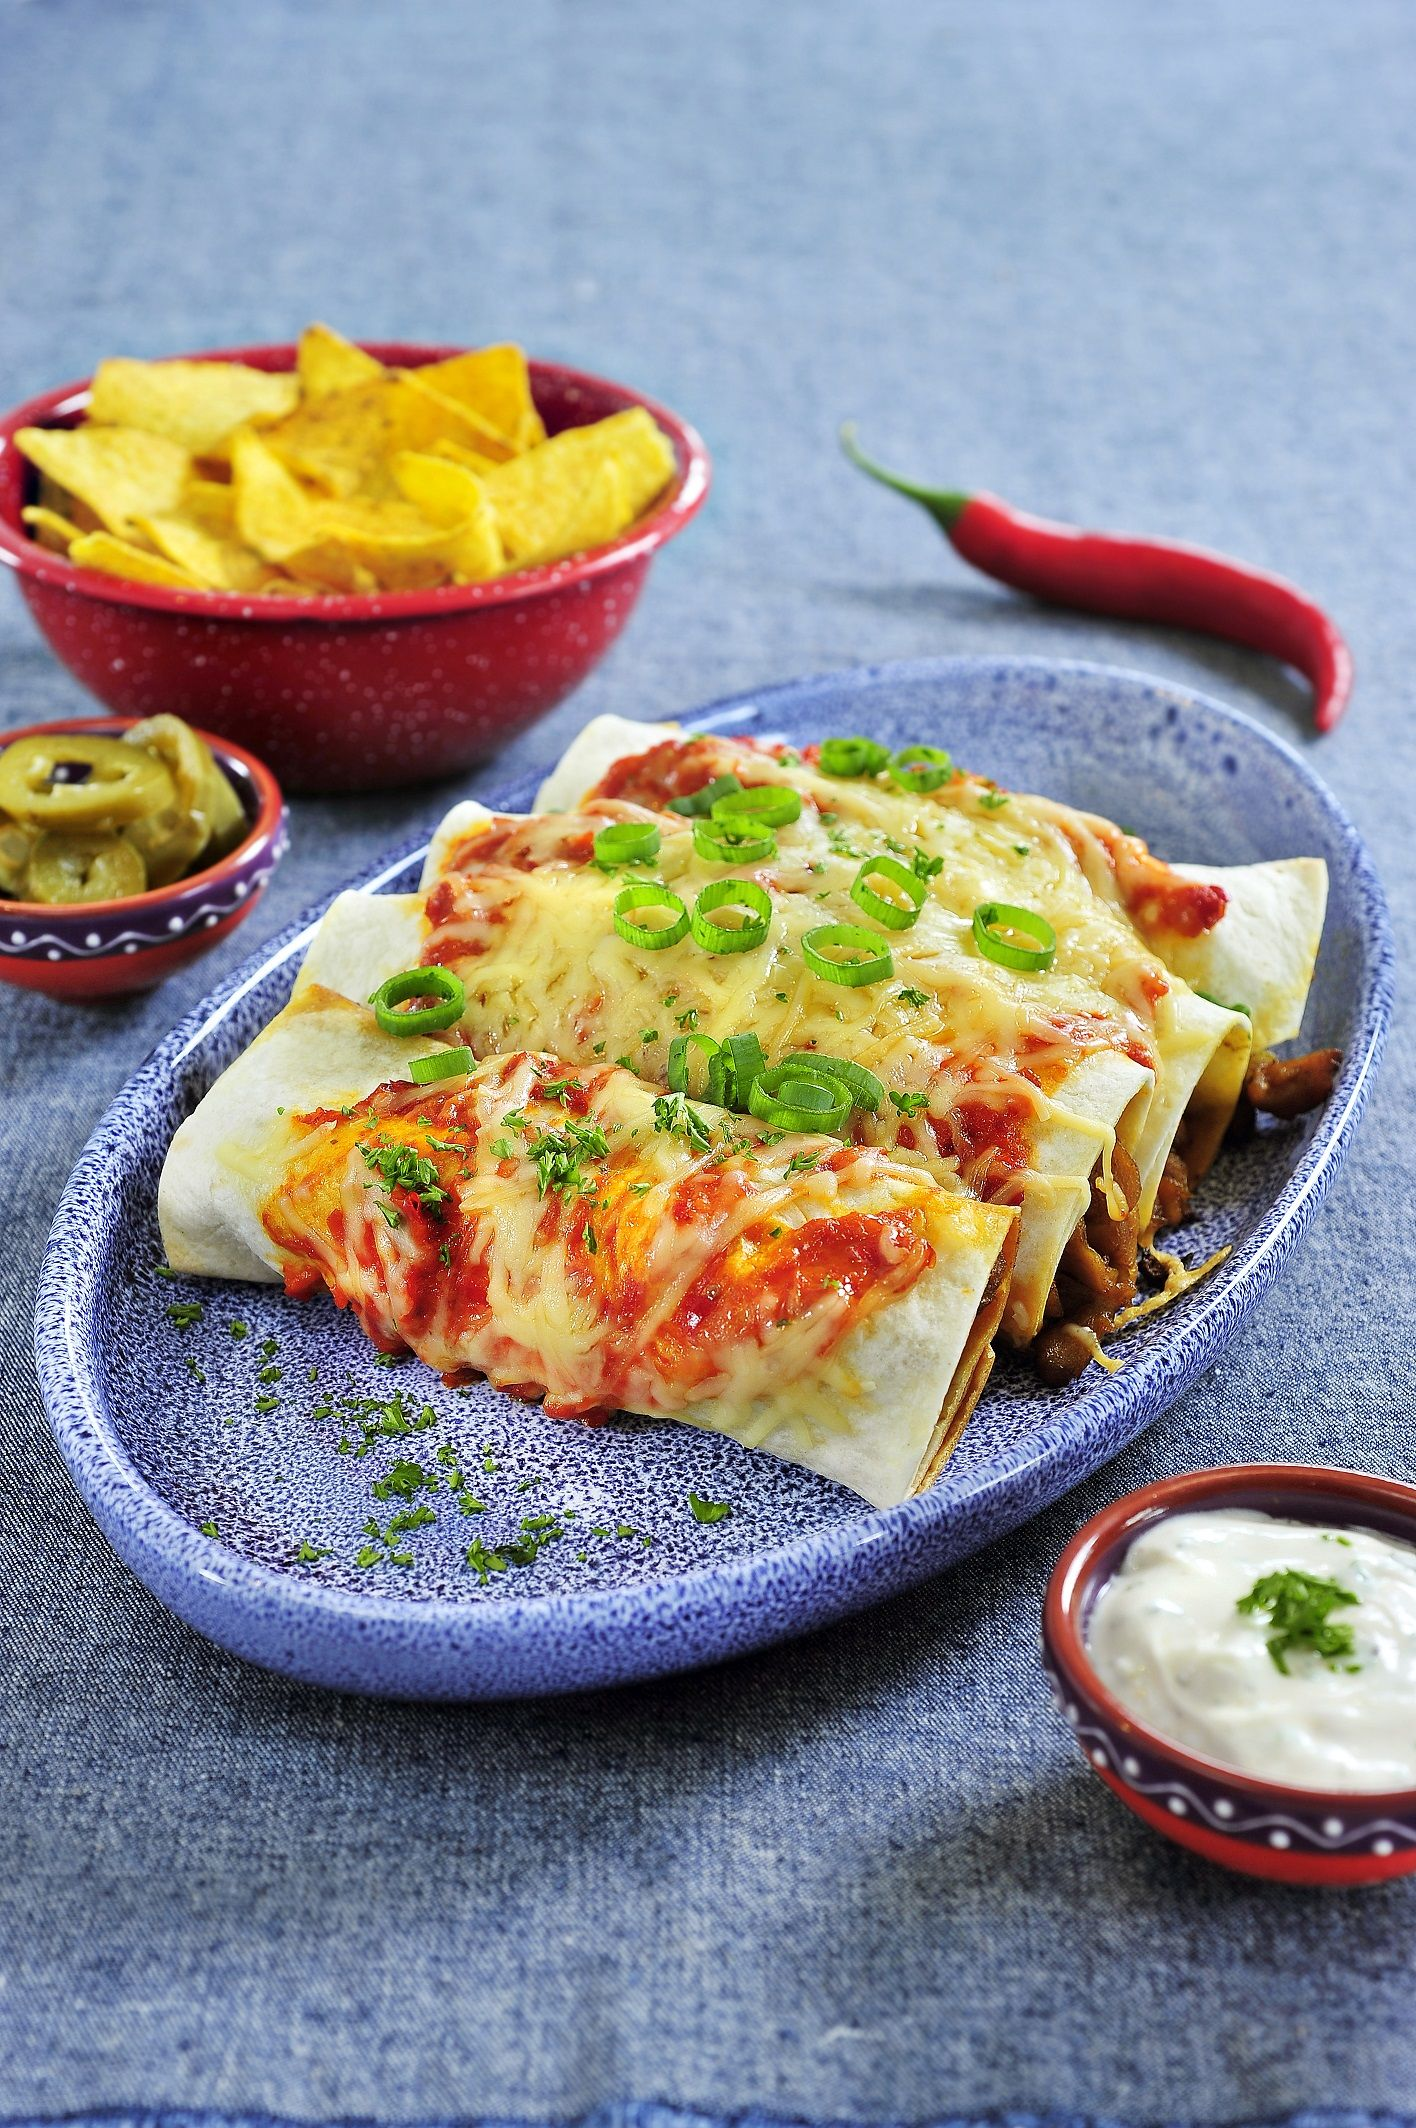 How to make real mexican enchiladas in your airfryer the philips the philips chef explains how to make real mexican enchiladas on his website with step by step pictures in english dutch forumfinder Gallery